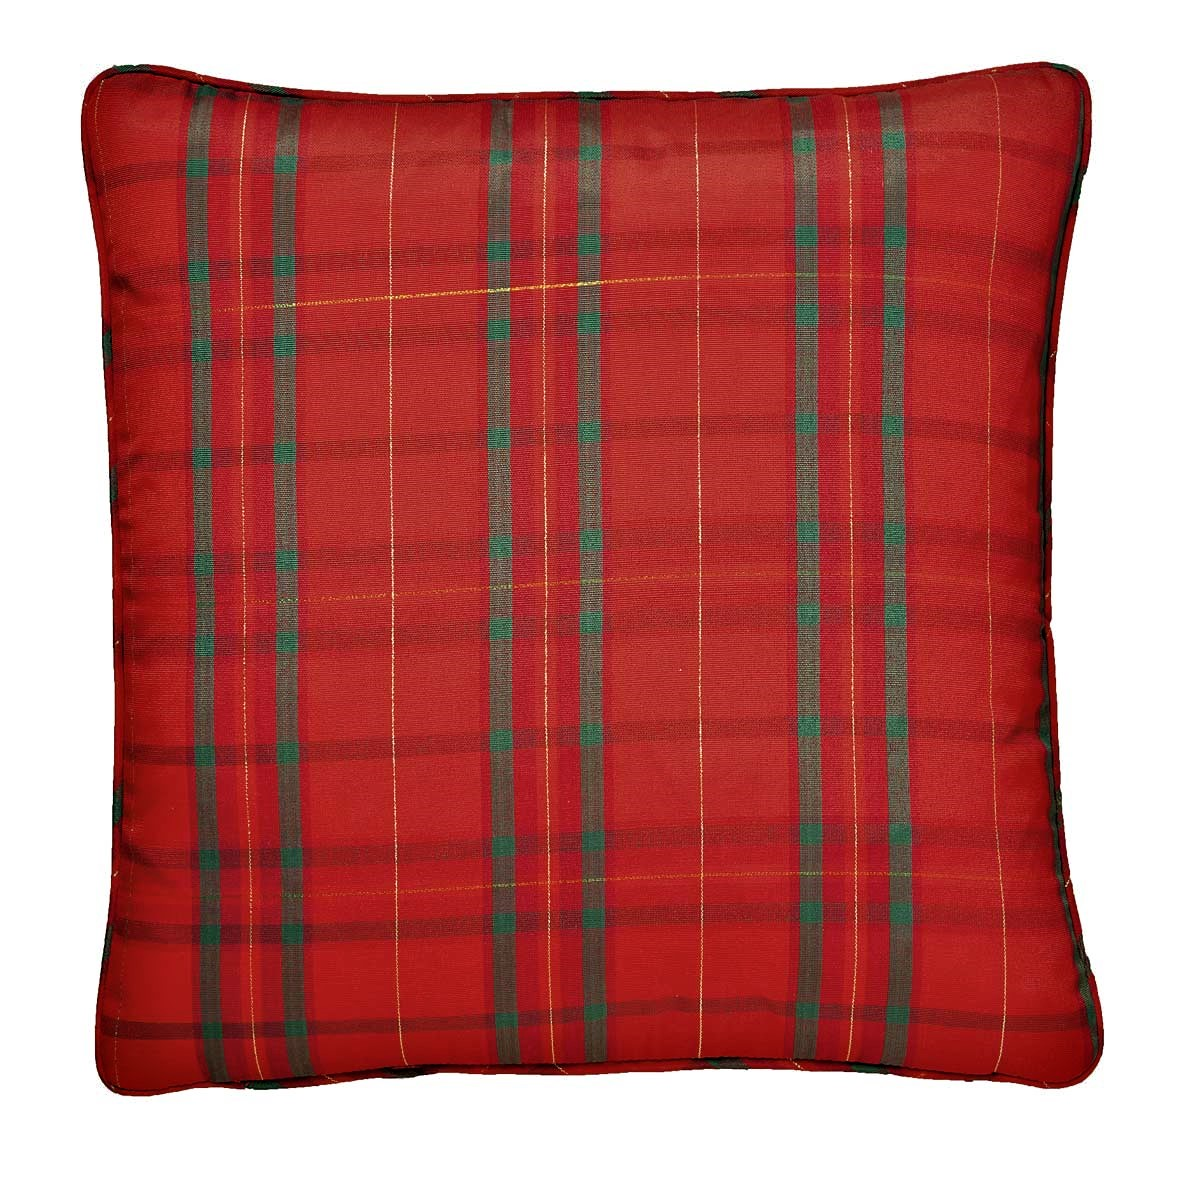 Tartan Cushion Covers in a 40 x 40 cm square